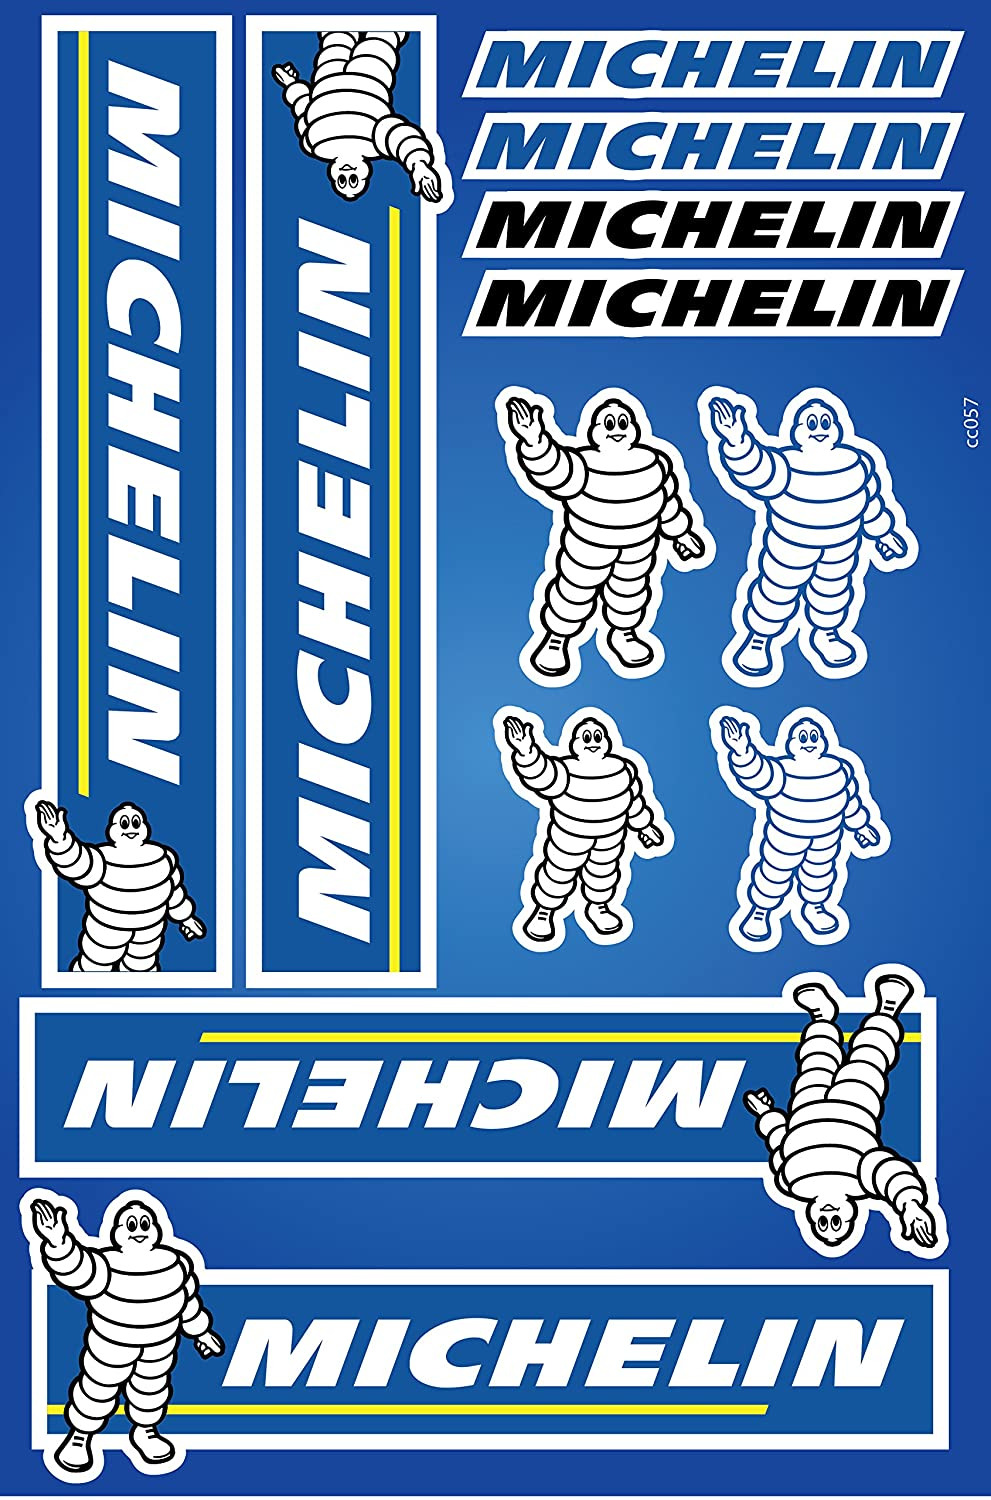 Michelin Stickers Decals 30x20cm vinyl with extra protection on top Life Decor